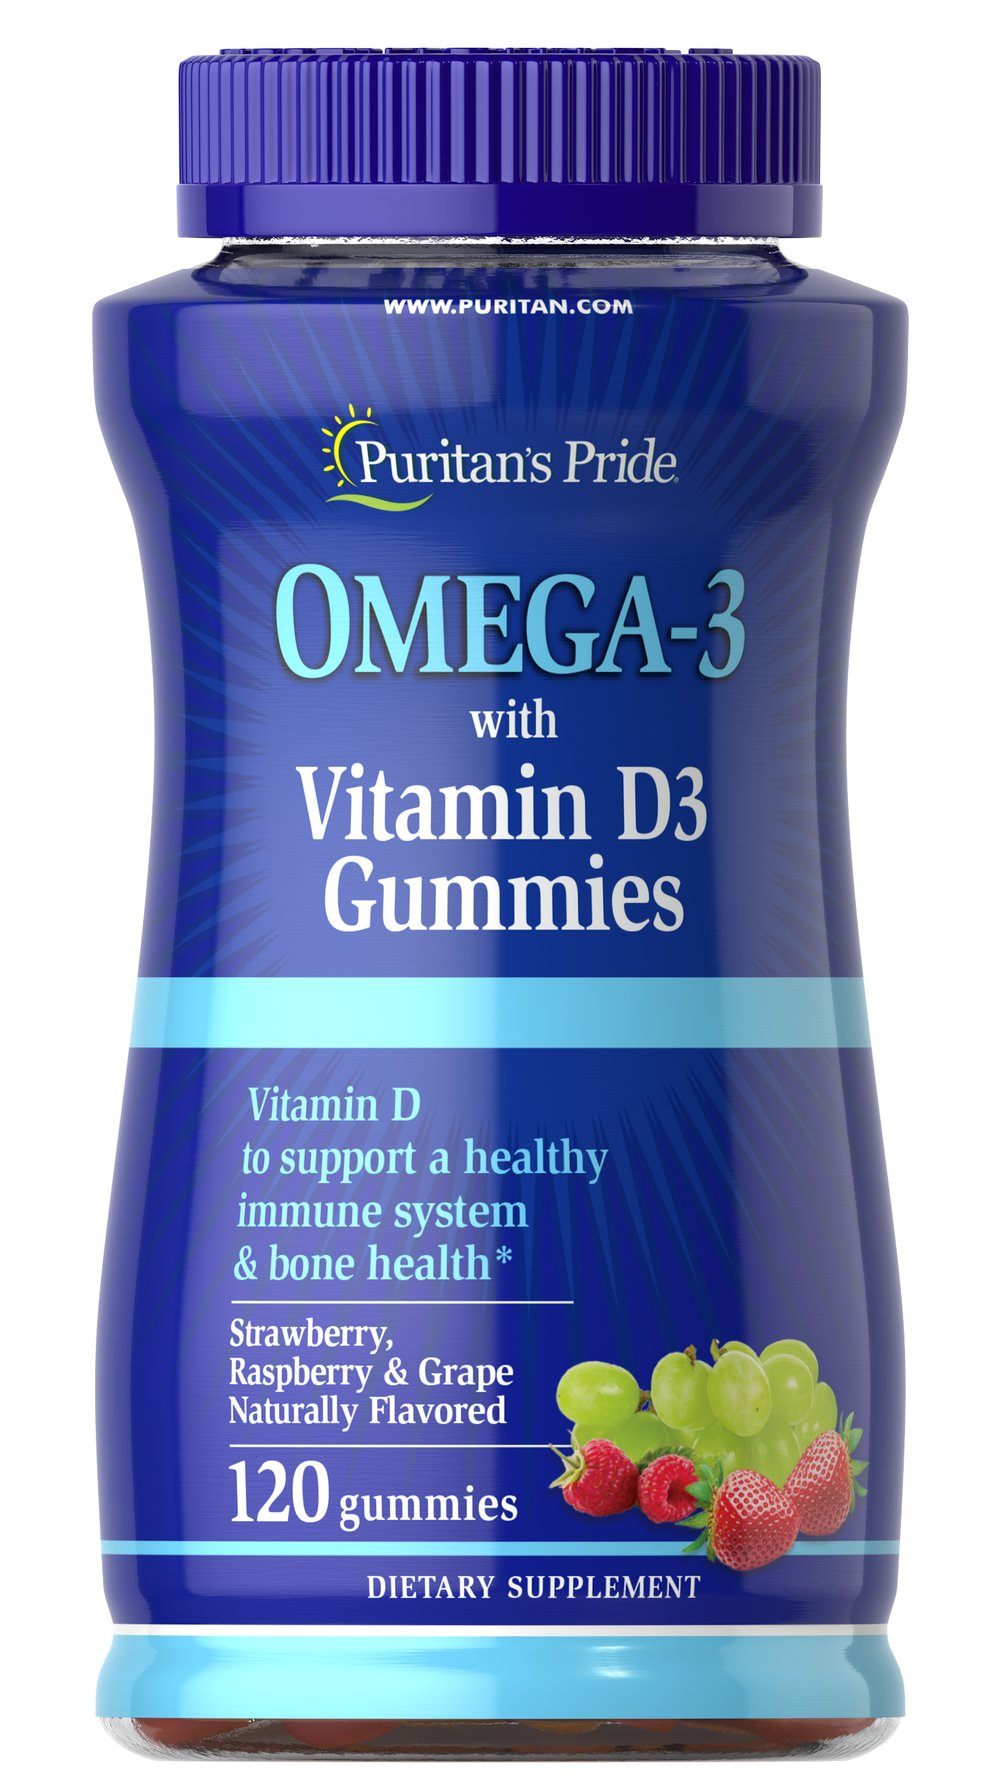 Omega 3 Gummy with Vitamin D3 Thumbnail Alternate Bottle View